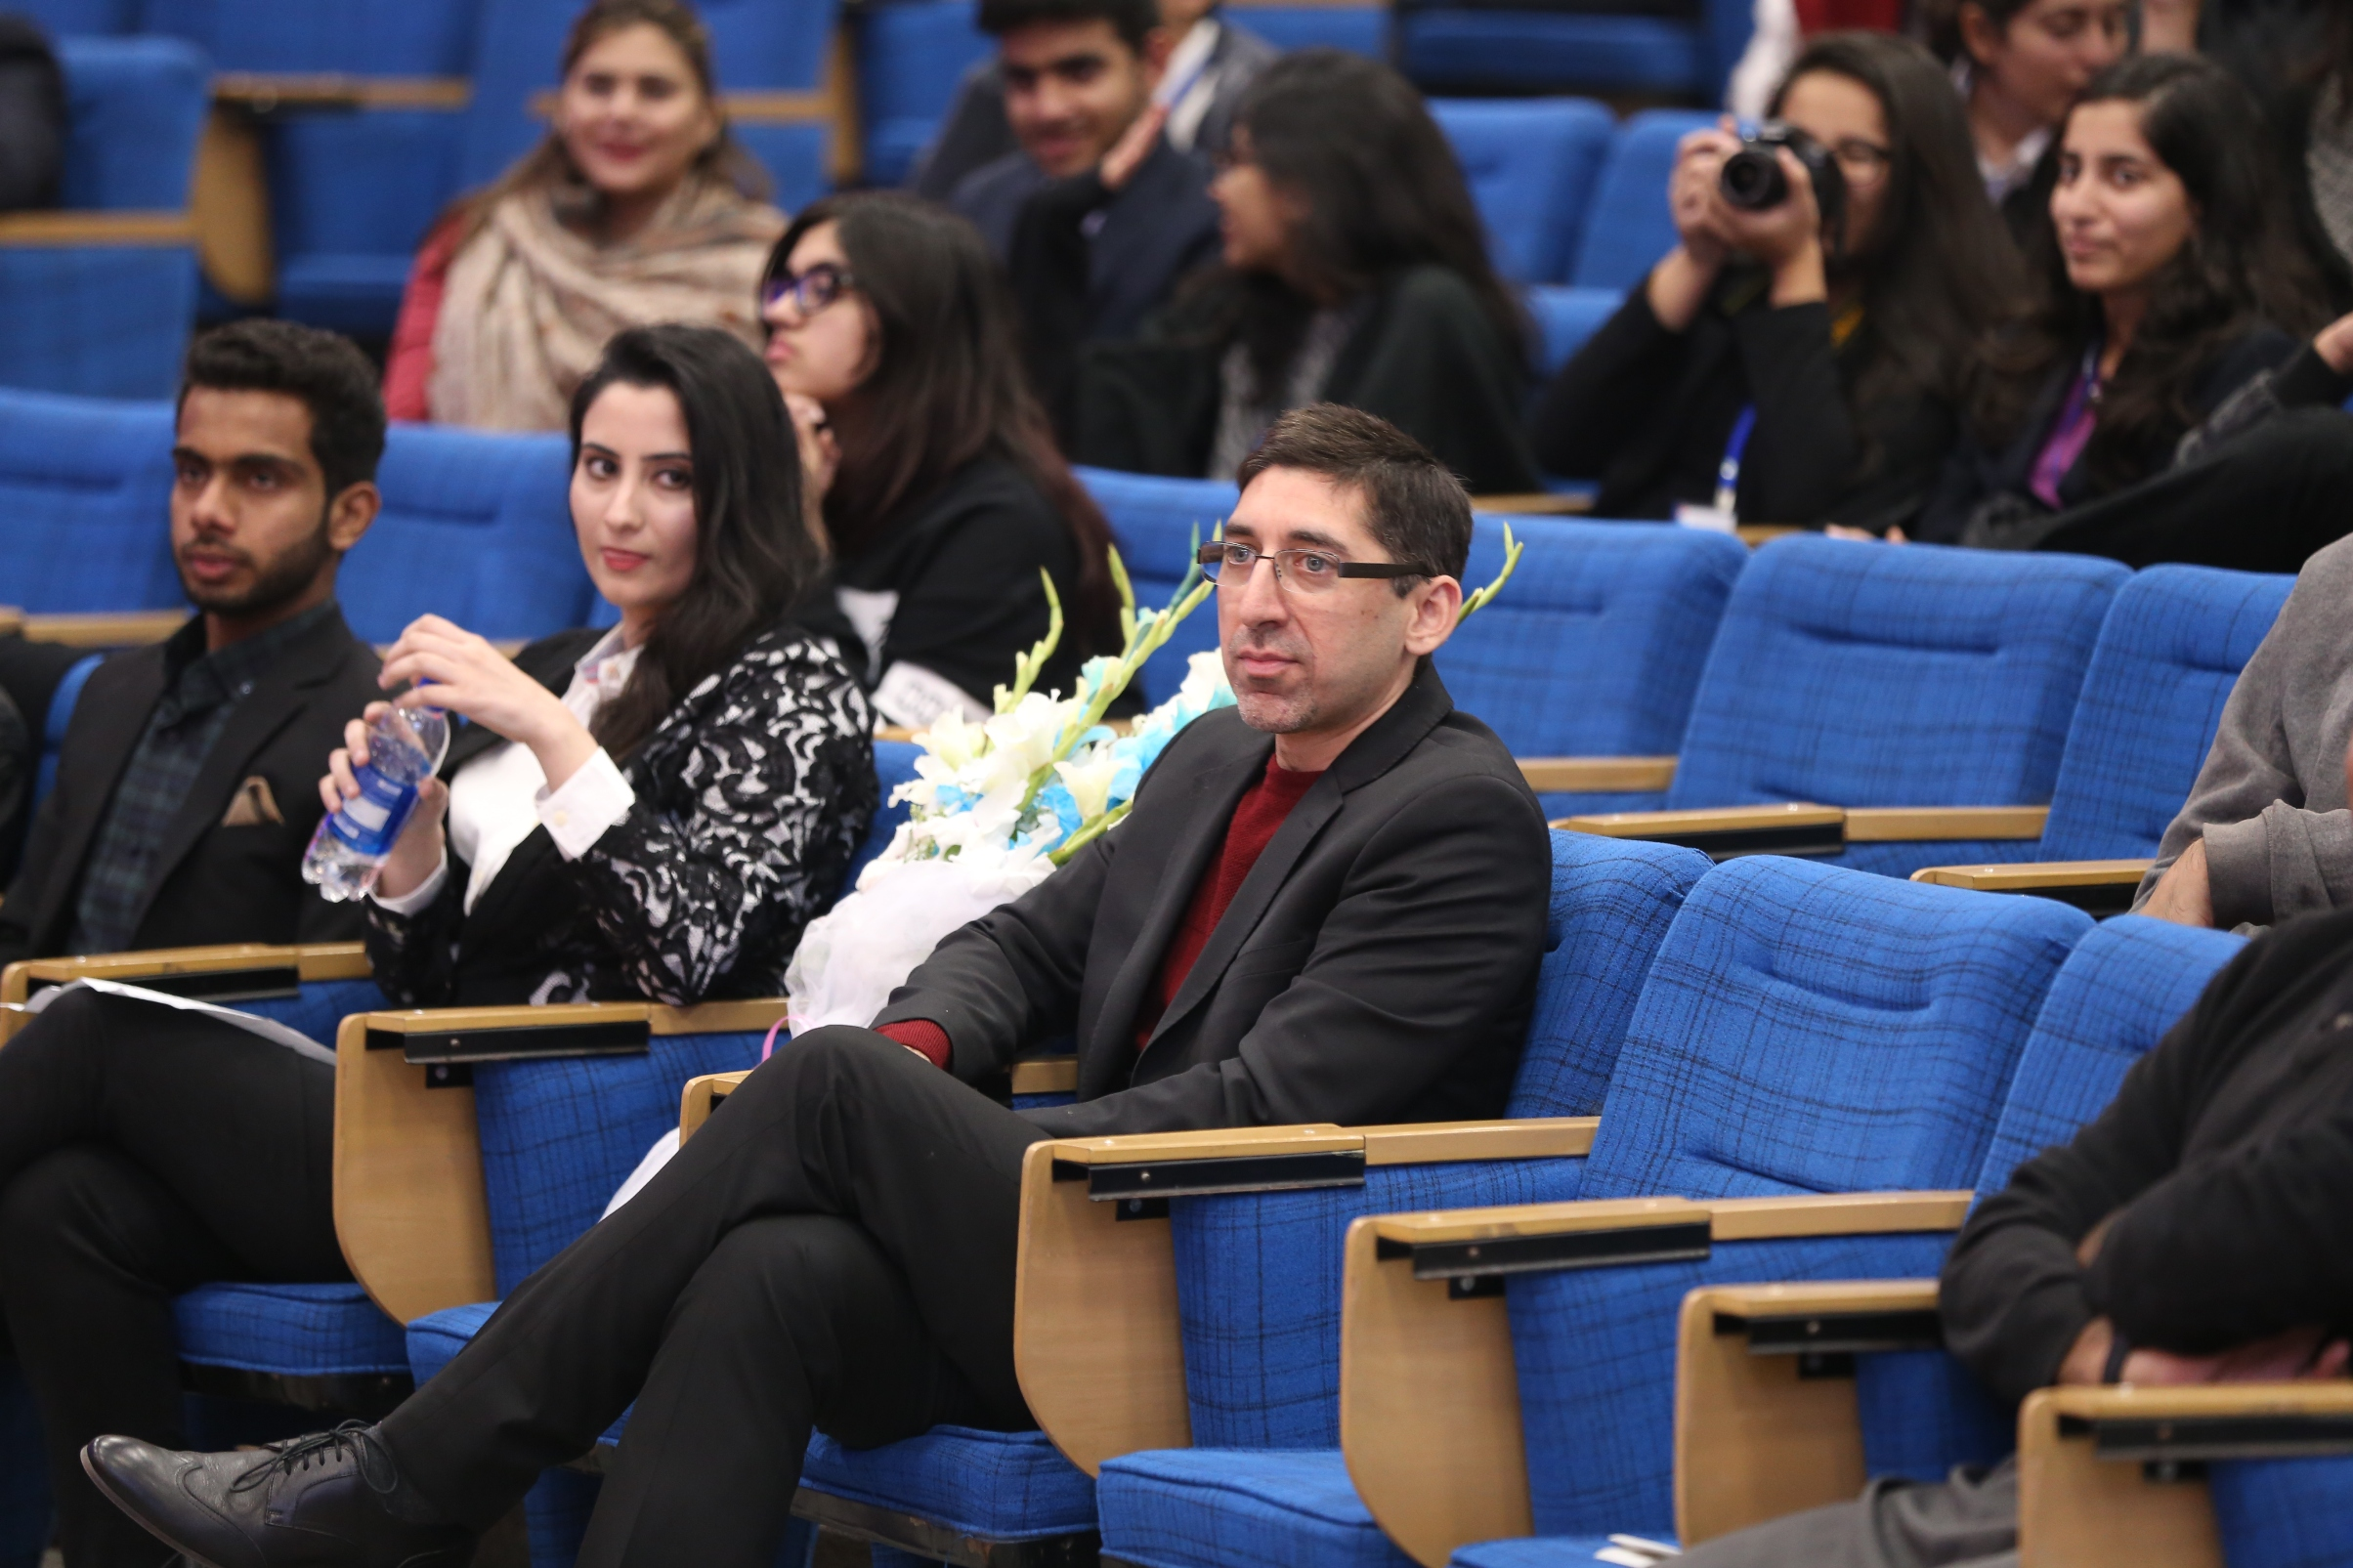 adeel-hashmi-as-guest-speaker-at-the-opening-ceremony